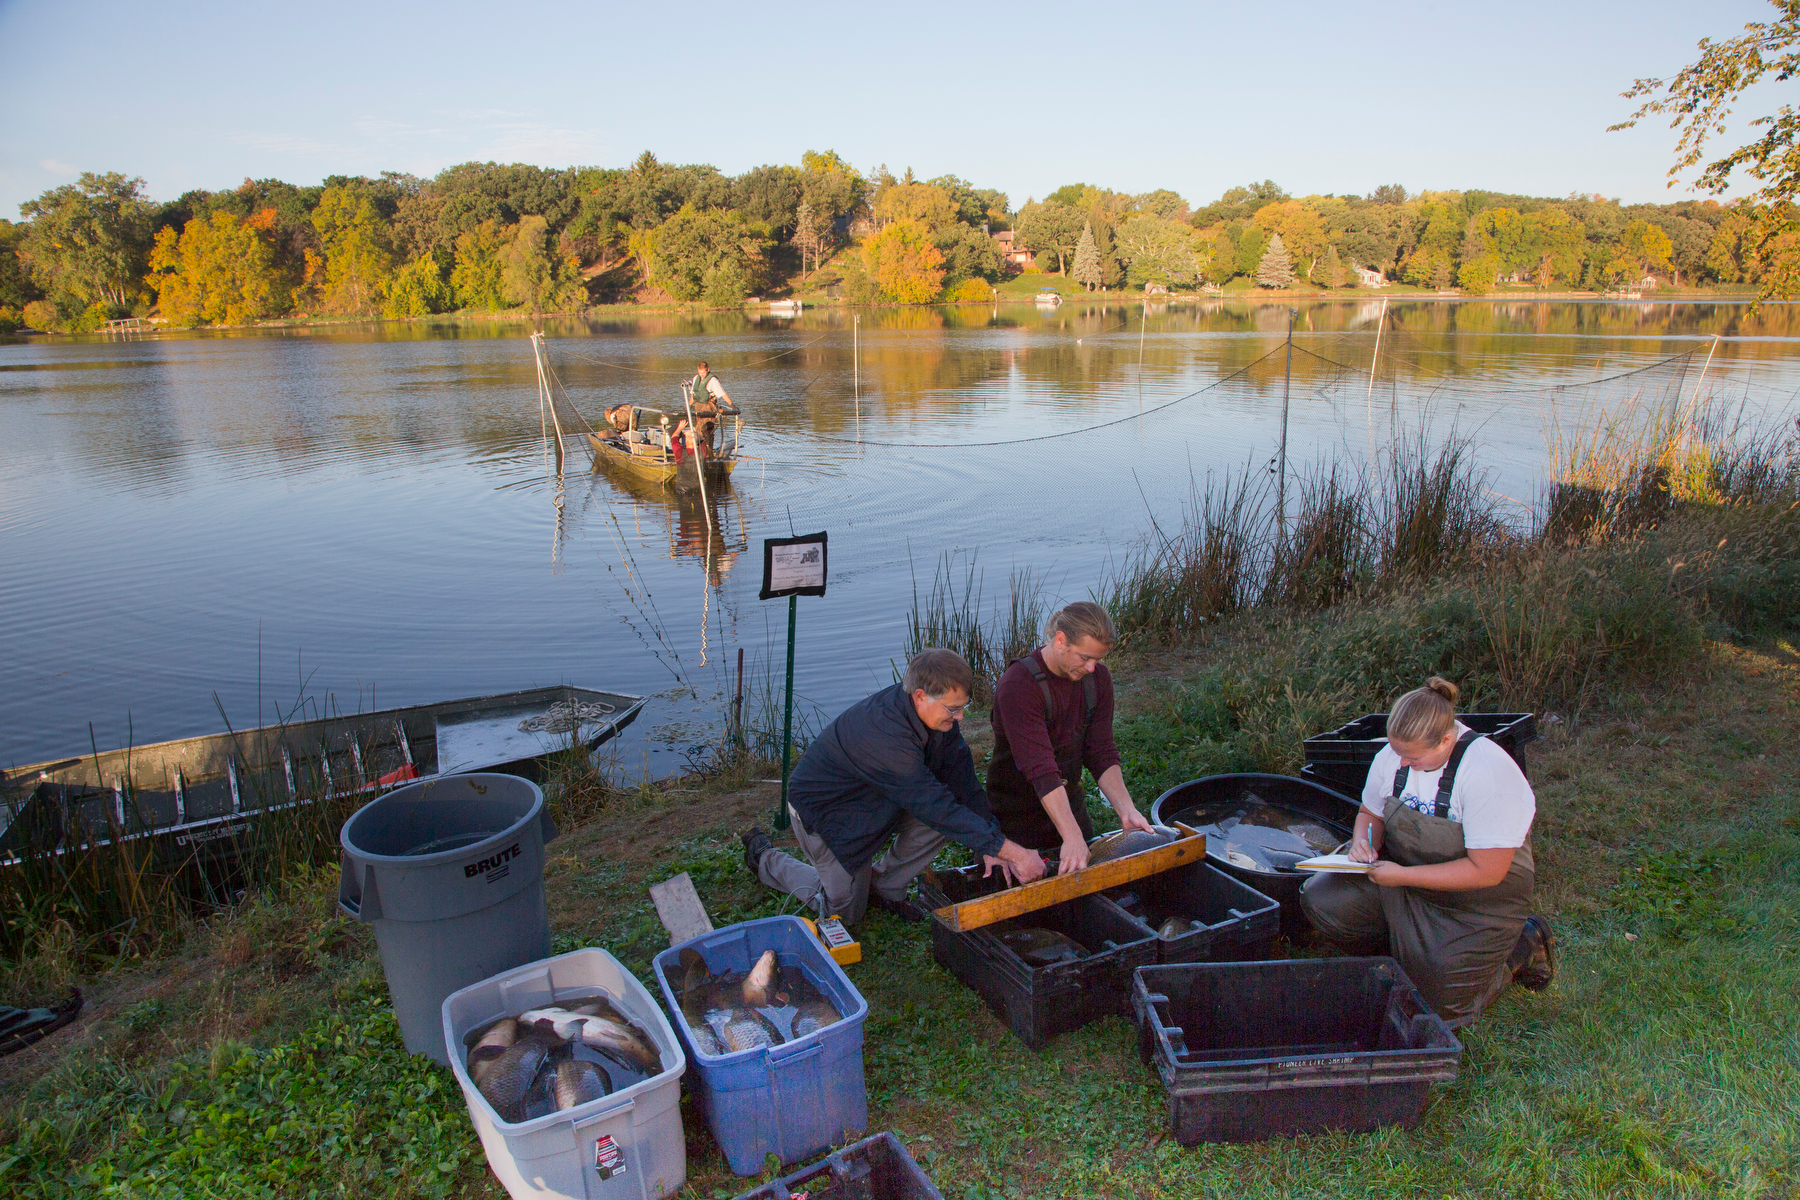 MAISRC researcher Peter Sorensen and his team take measurements of common carp.